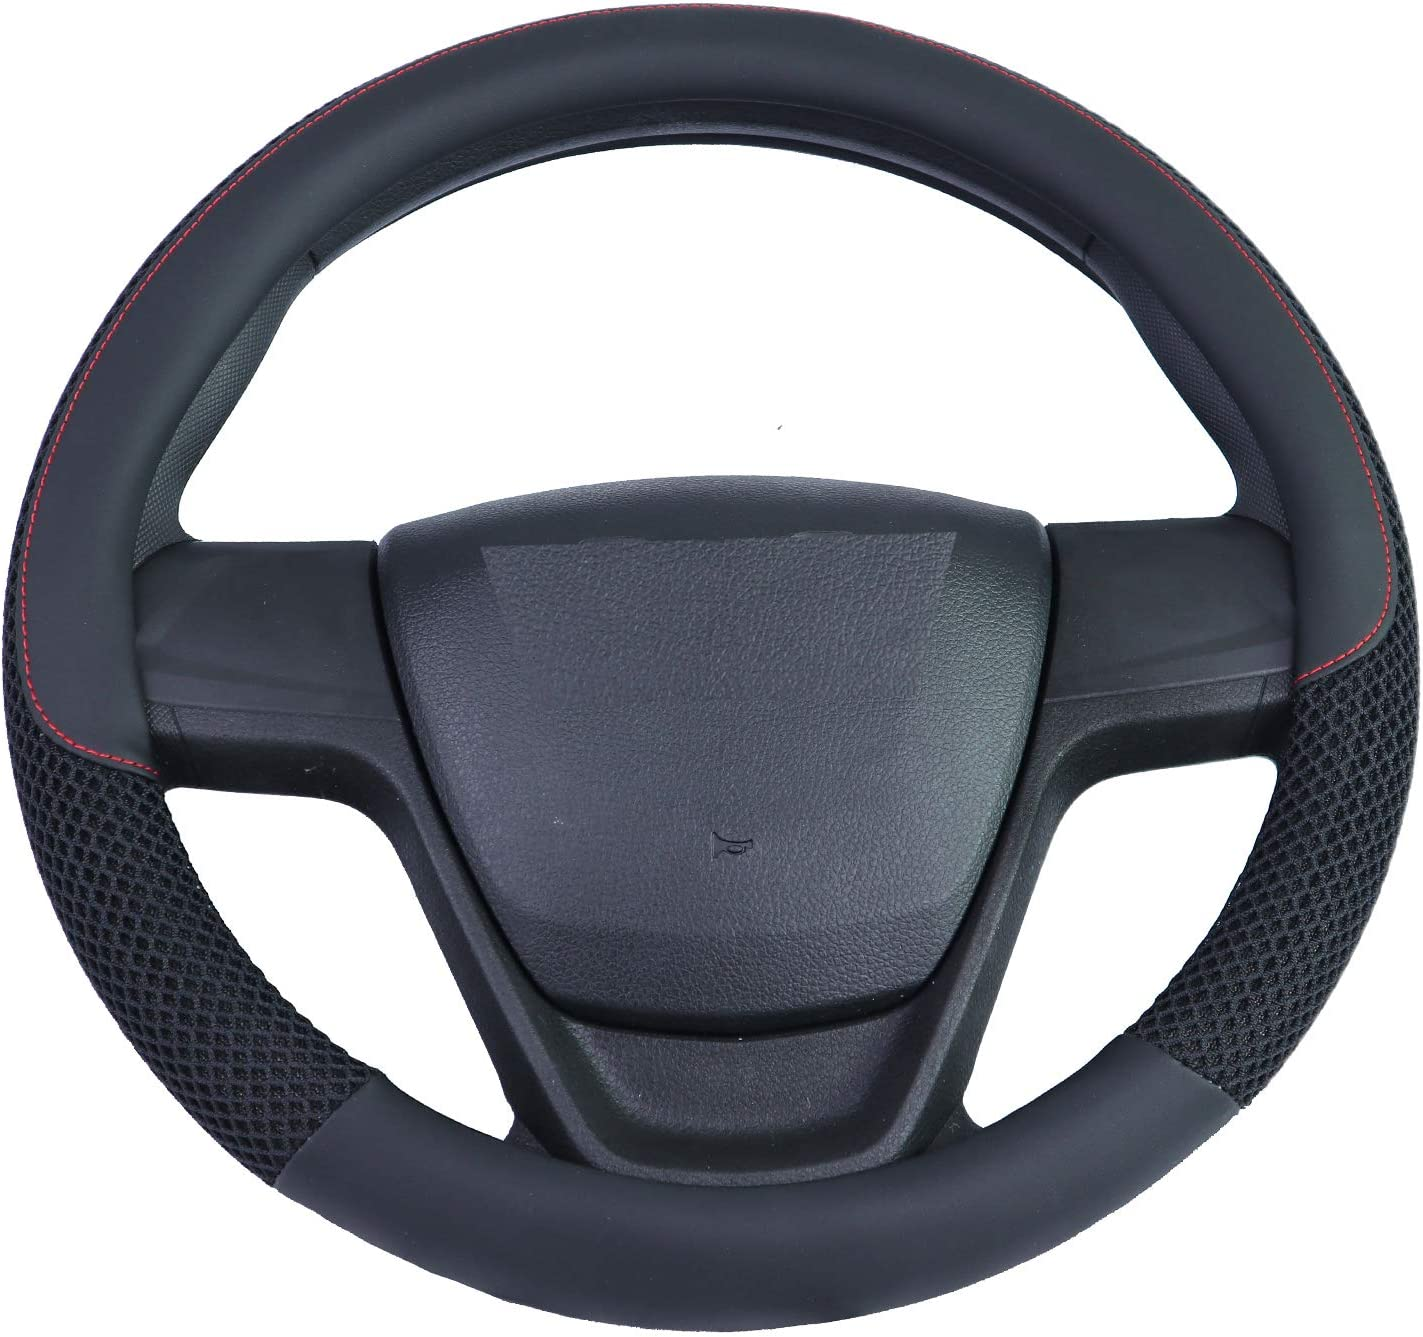 Outon Microfiber Leather Universal Car Steering Wheel Cover 37-38cm//14.5-15inch Black 1